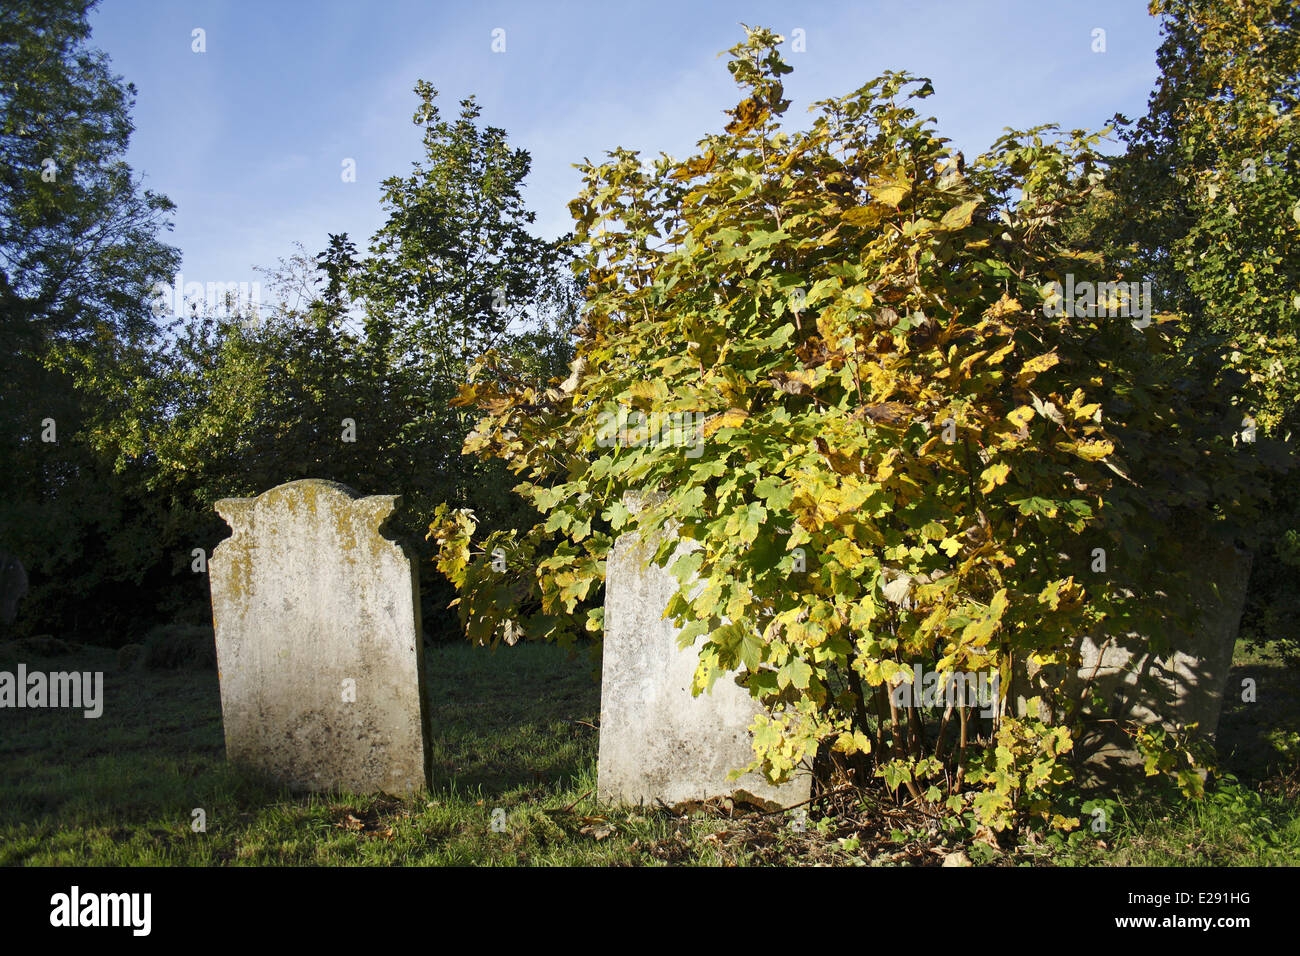 Sycamore (Acer pseudoplatanus) sapling, growing beside headstones in church graveyard, St. Andrew's Church, - Stock Image